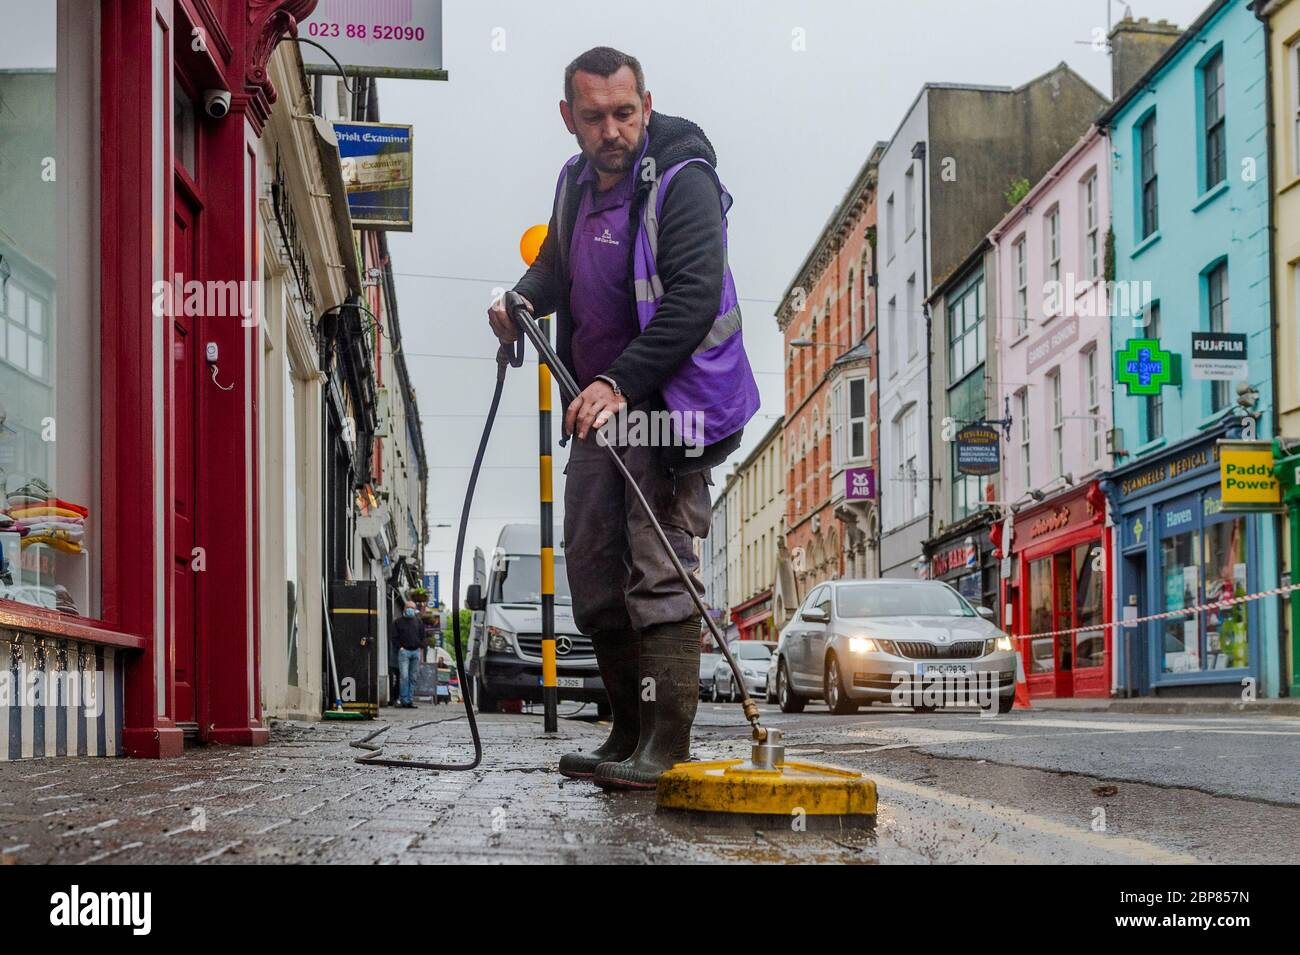 bandon-west-cork-ireland-18th-may-2020-bandon-had-its-main-street-deep-cleaned-this-morning-as-part-of-the-return-to-business-phase-of-exiting-the-covid-19-lockdown-soft-clean-group-was-tasked-with-performing-the-task-in-bandon-marcin-urbaniak-an-employee-soft-cleans-the-street-credit-ag-newsalamy-live-news-2BP857N.jpg